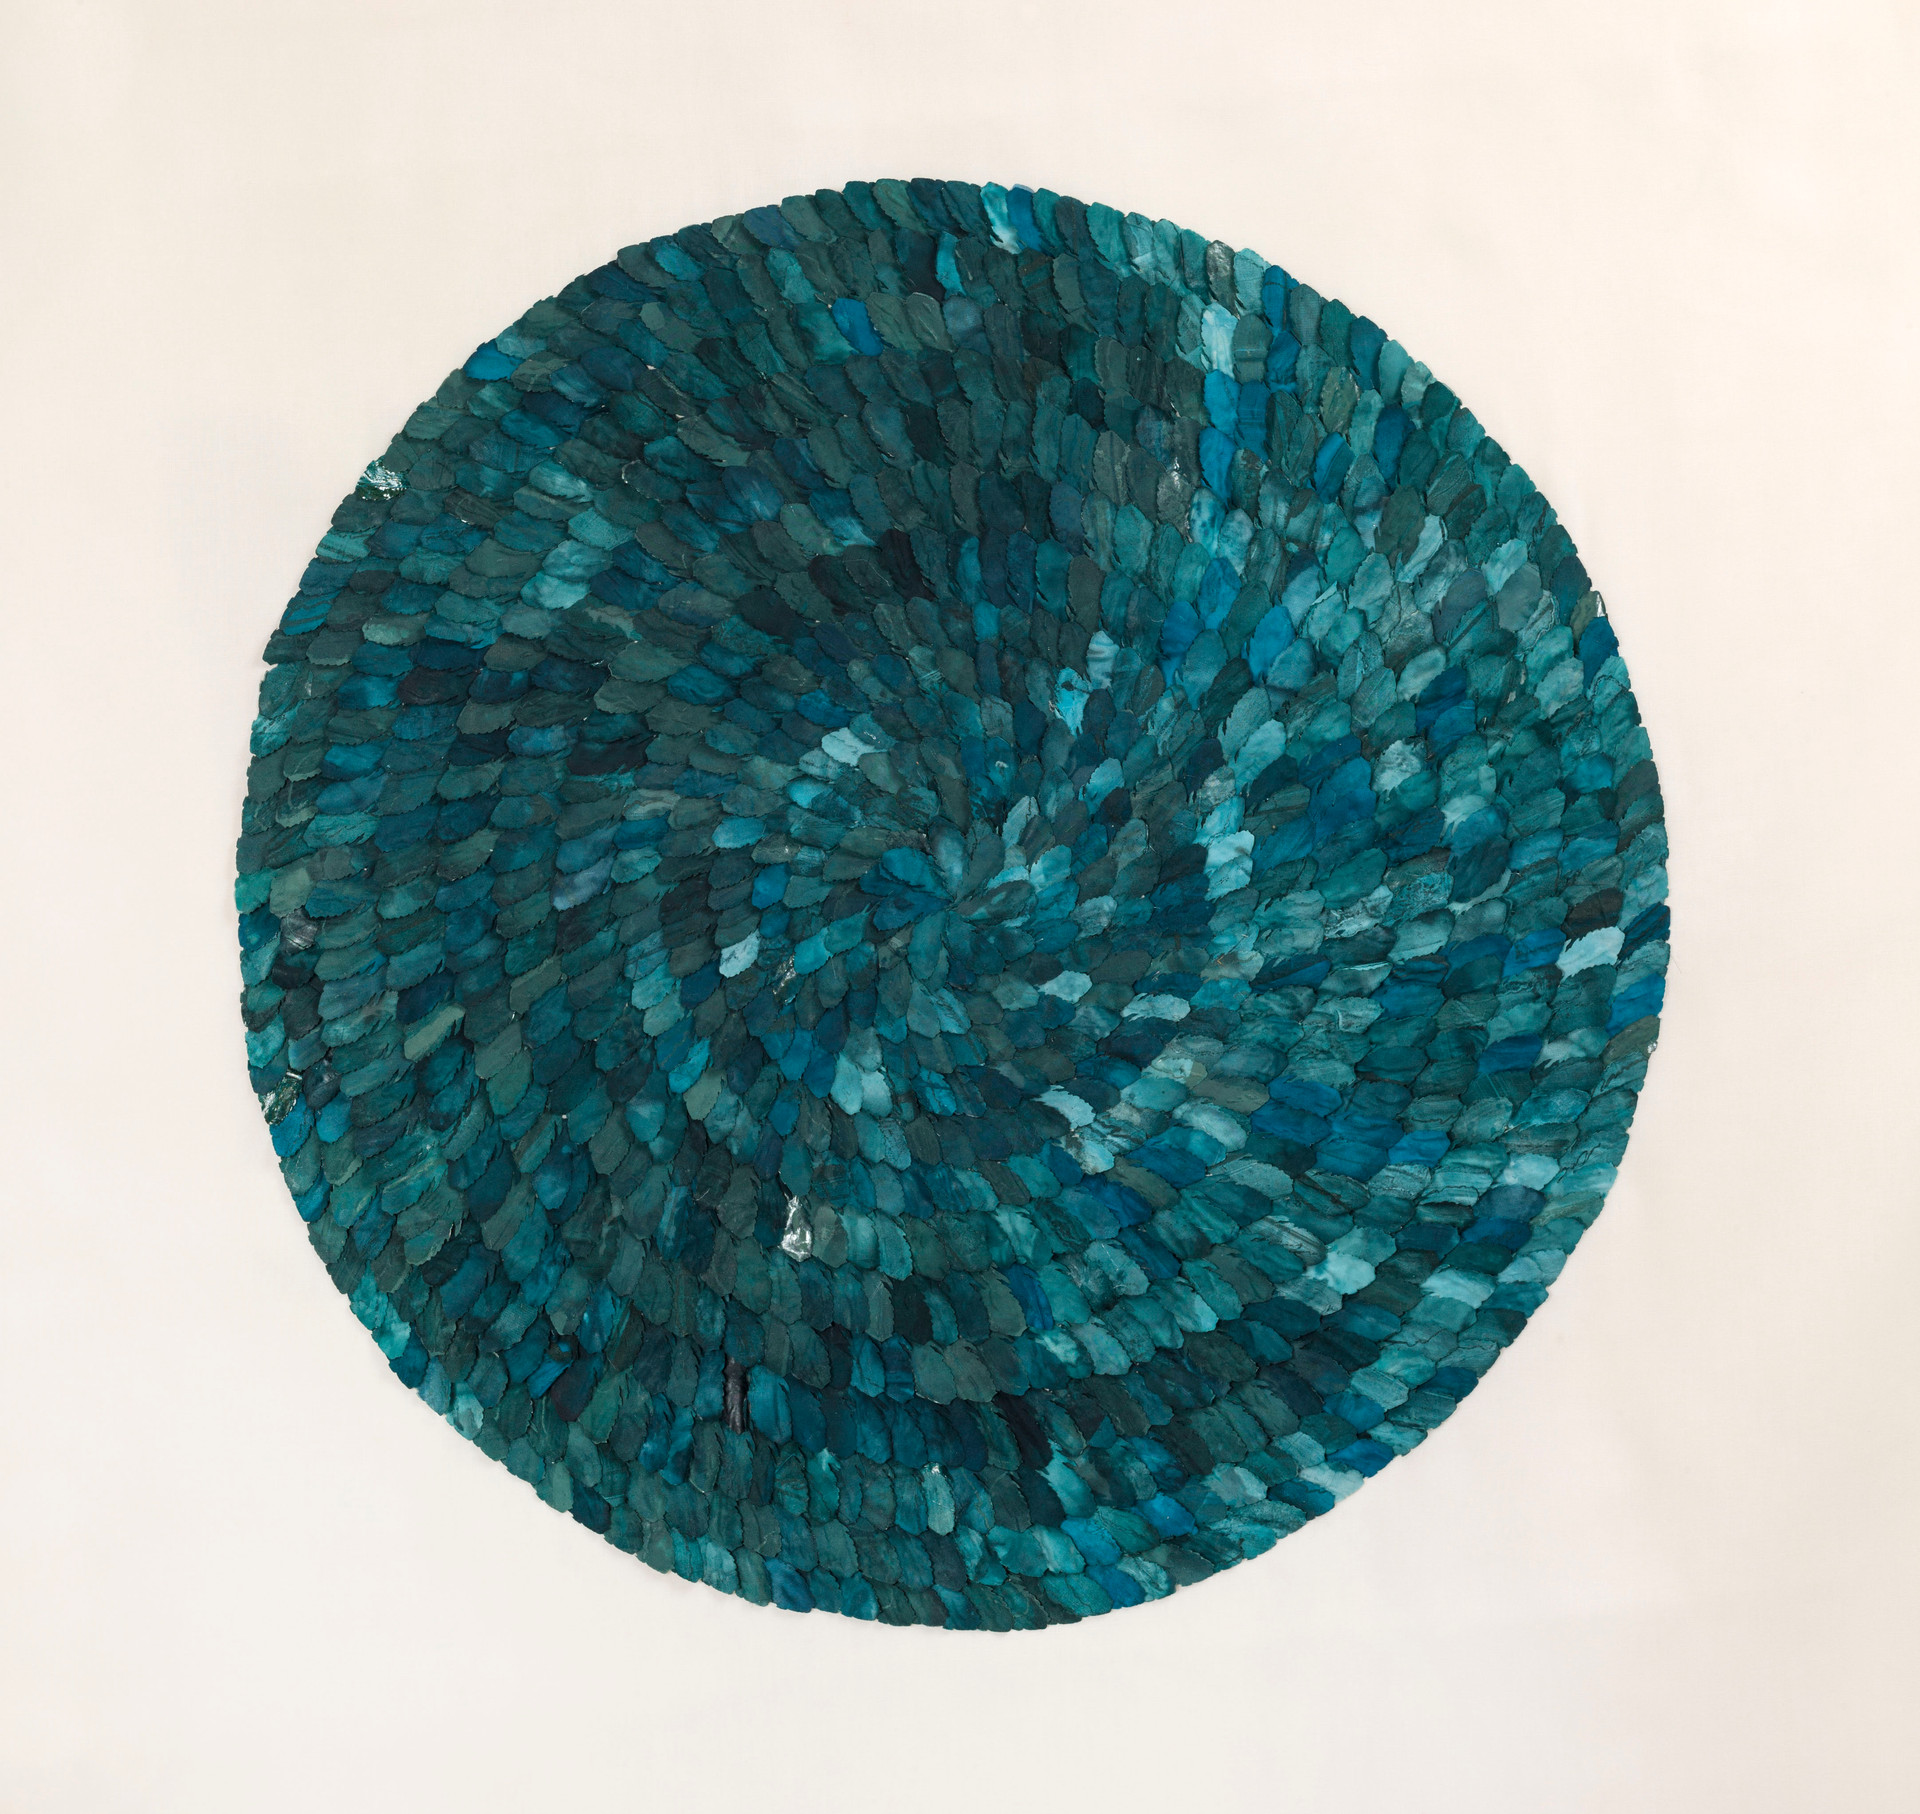 Engraved blue feather/2014/Silk Paper Etching/110x110 cm